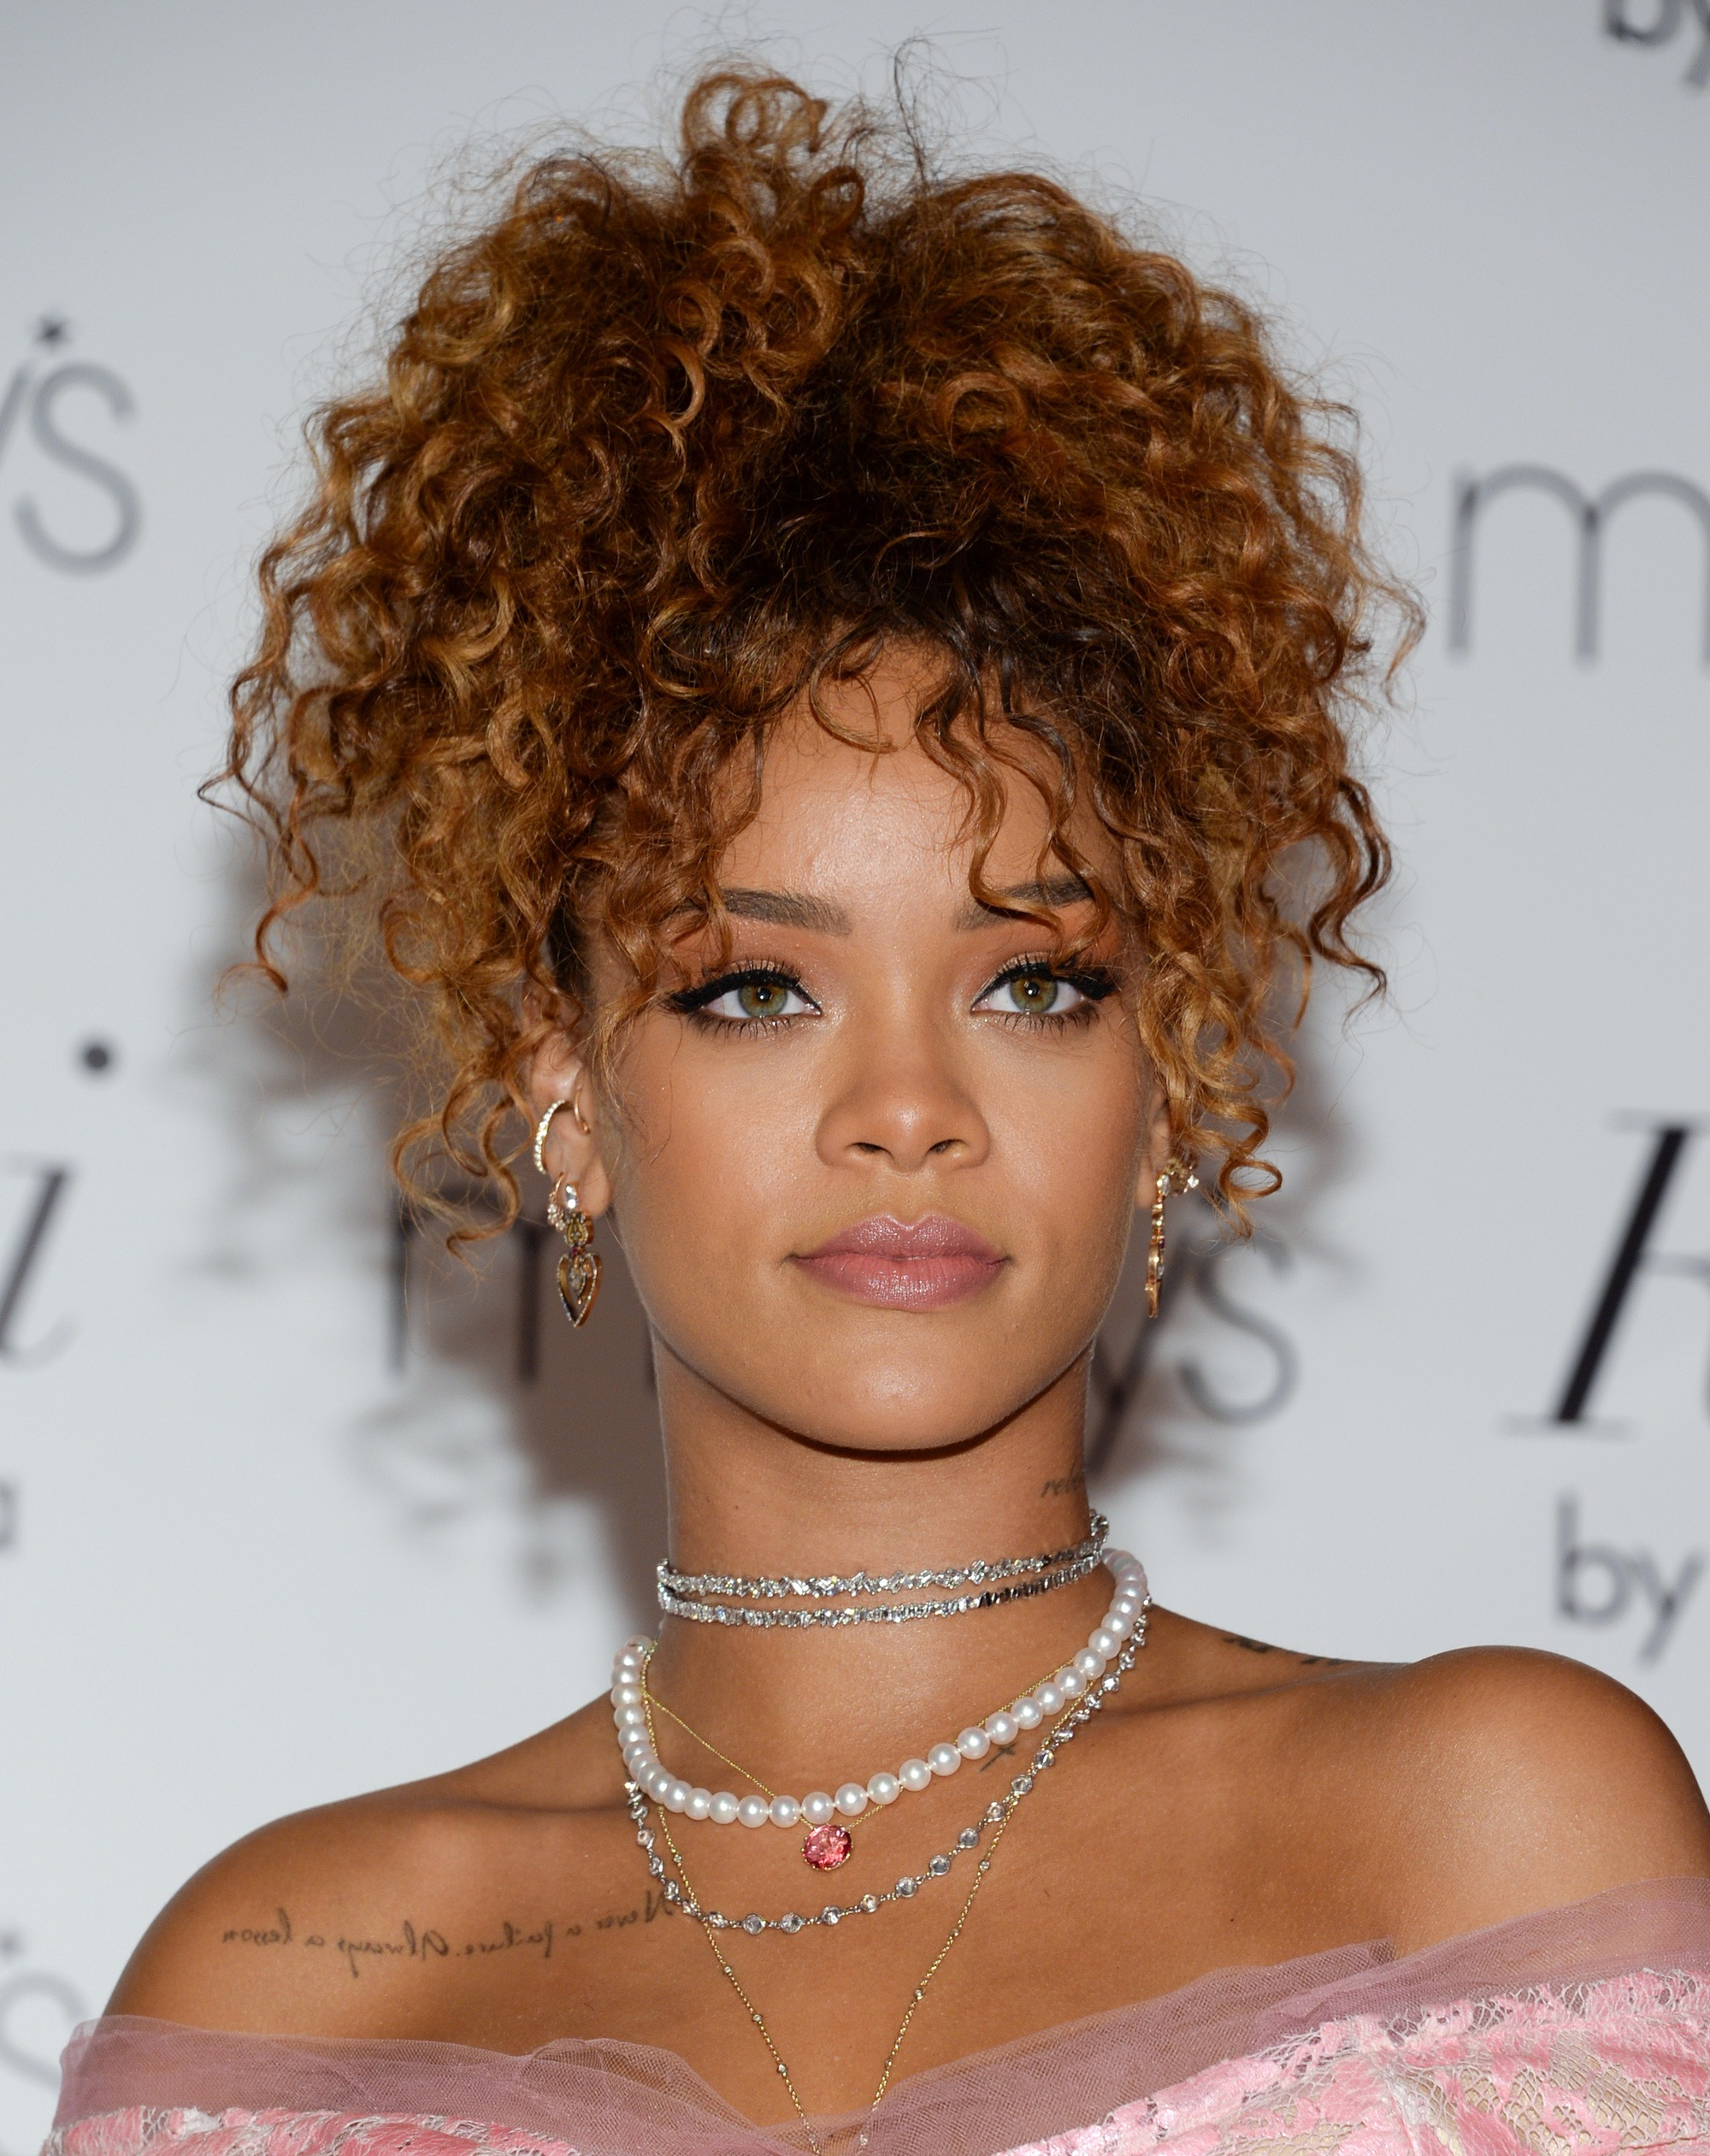 close up shot of rihanna at fragrance launch, wearing her hair in a high curly ponytail and pink dress